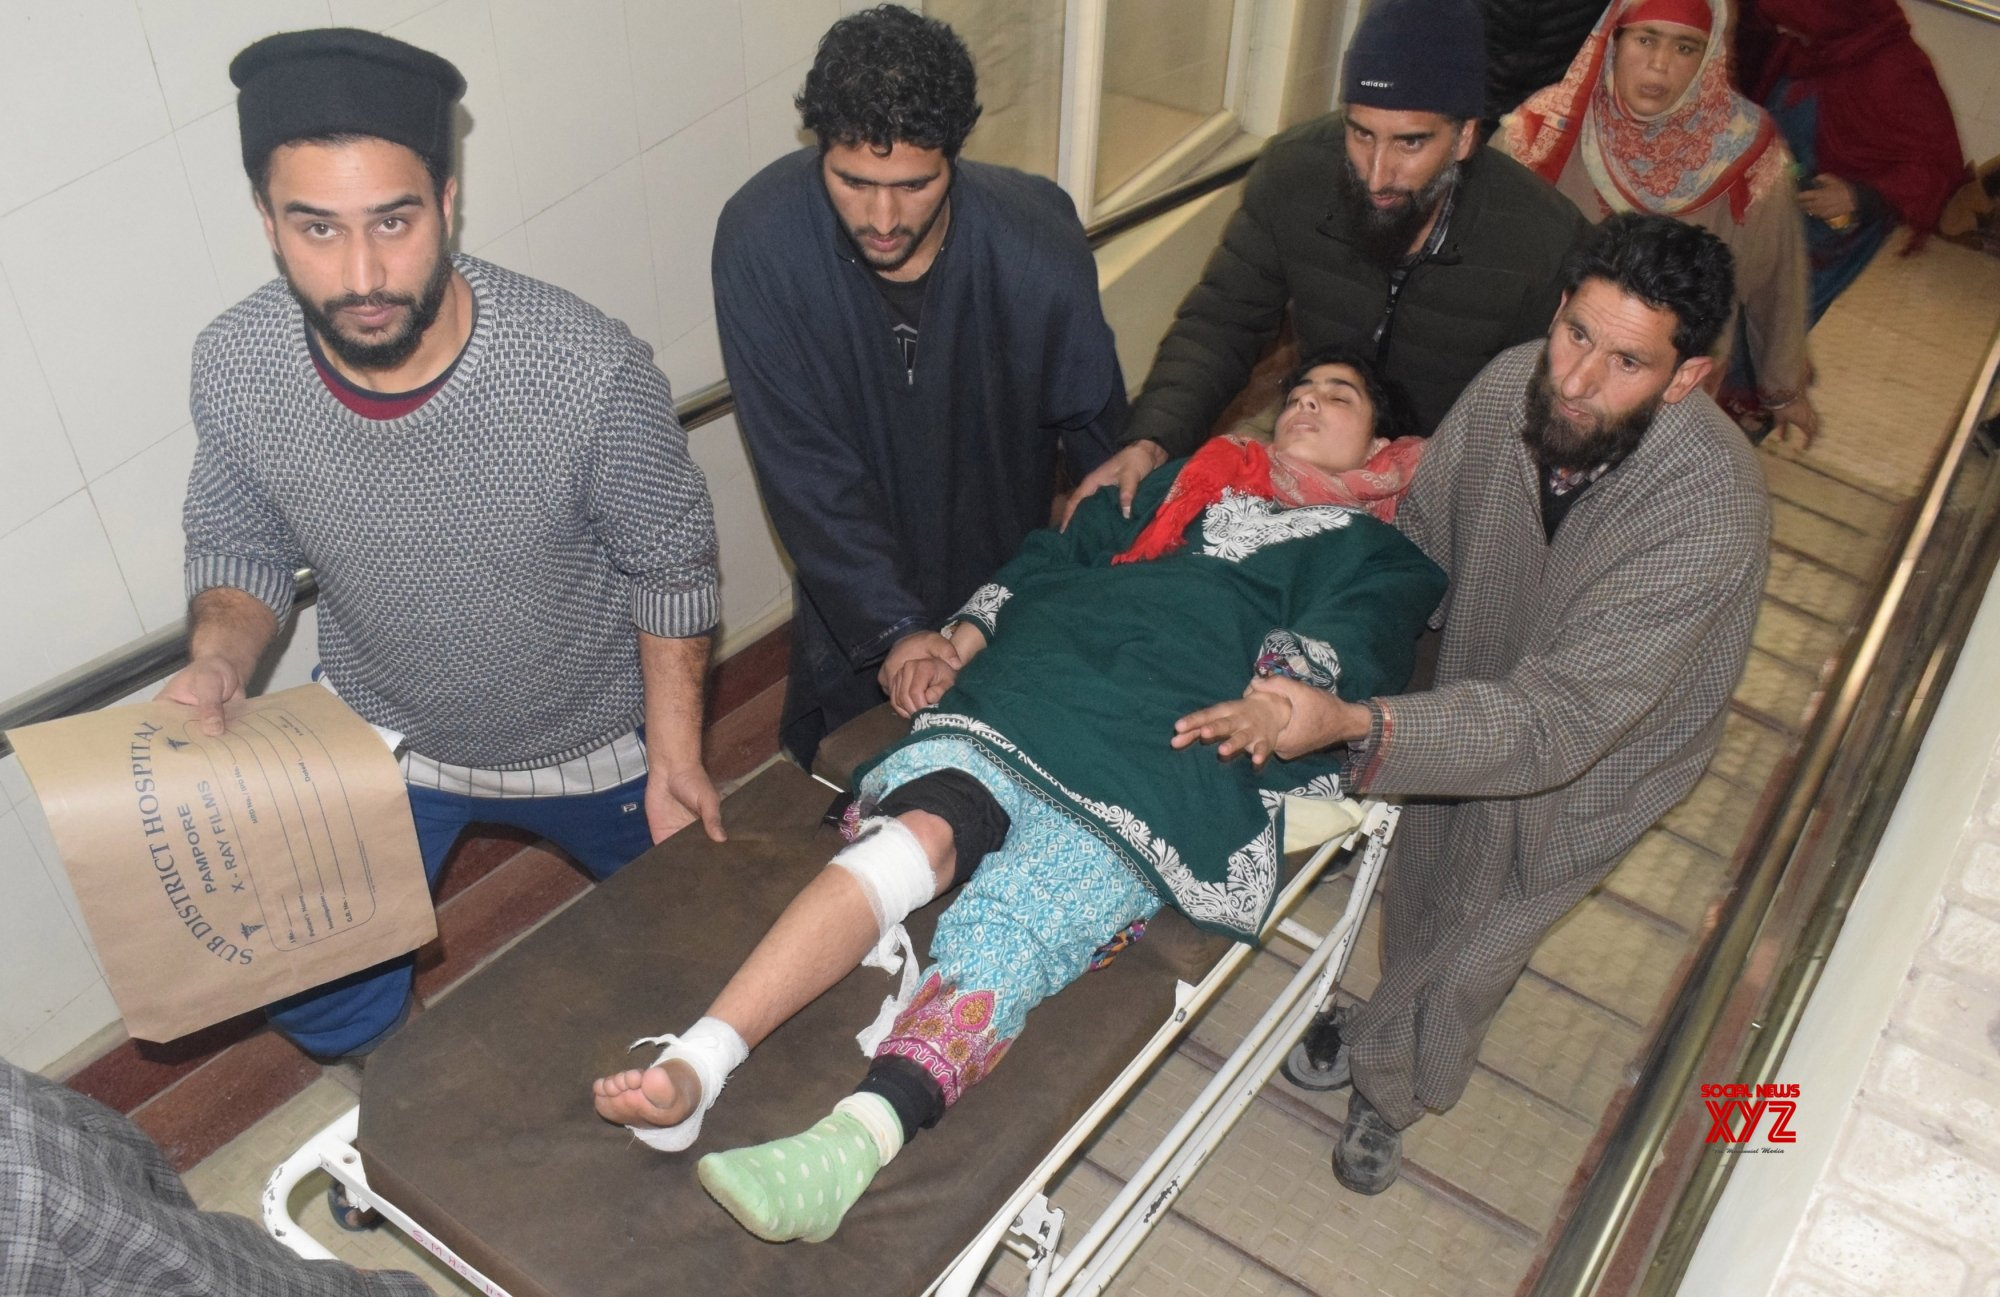 Pulwama: 28 students injured in explosion in Kashmir tuition centre #Gallery